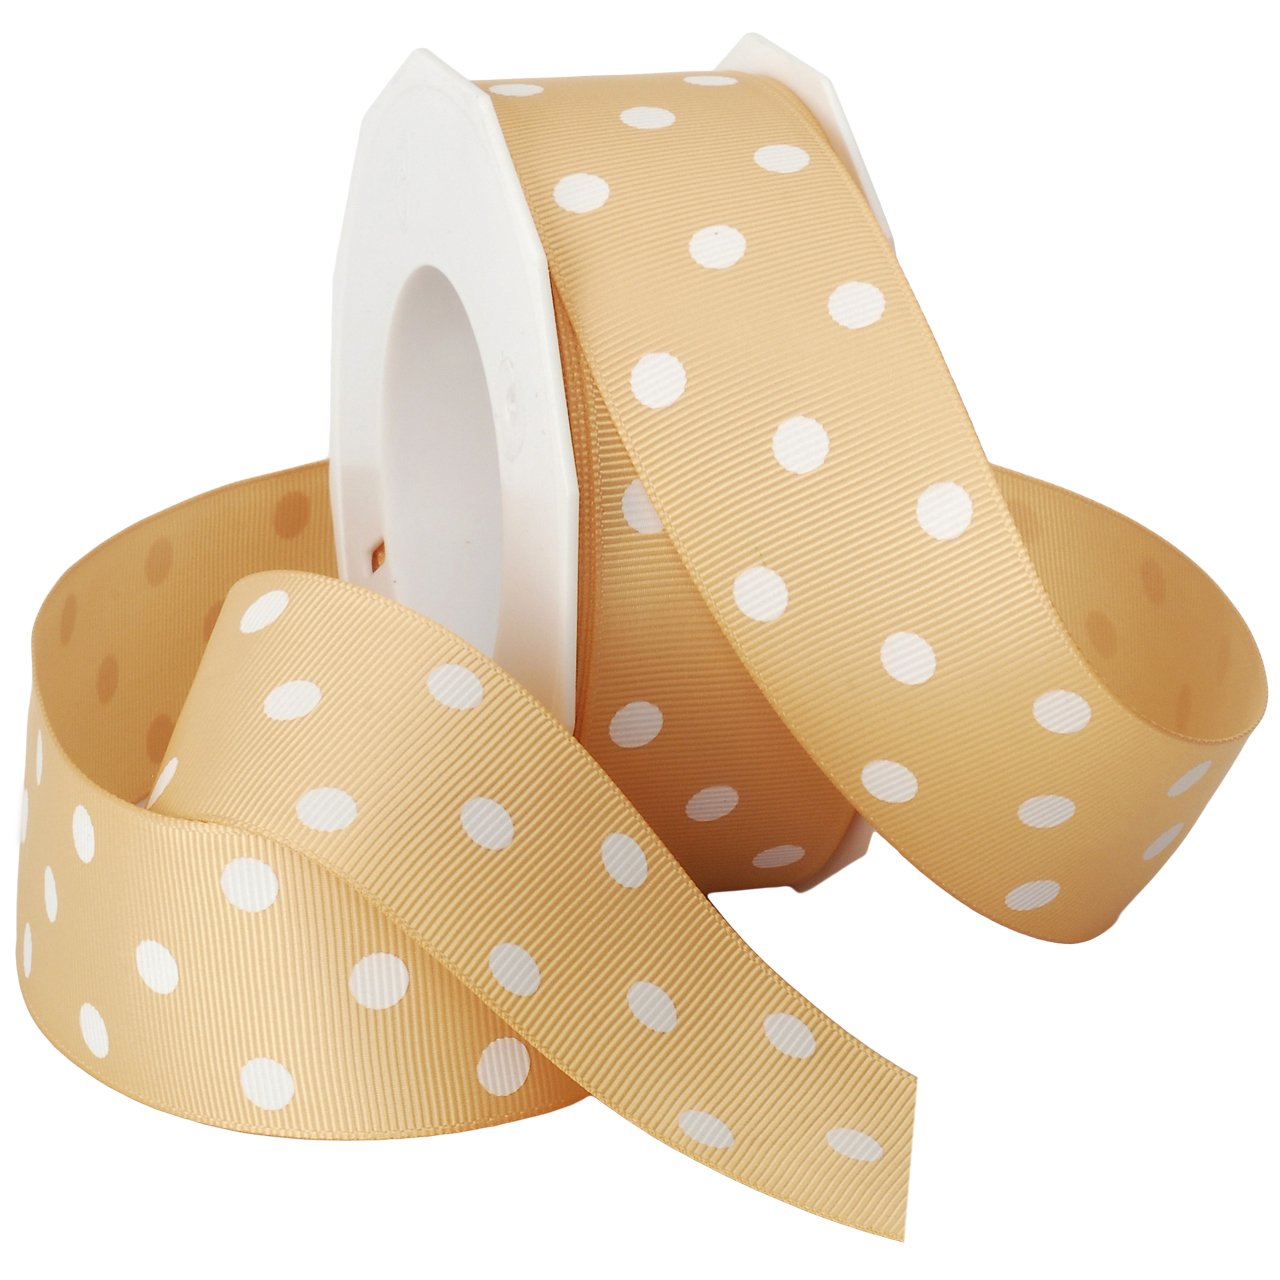 Morex Grosgrain Dot Ribbon, 1-1/2-Inch by 20-Yard Spool, Light Pink with White Dots 3908.38/20-123